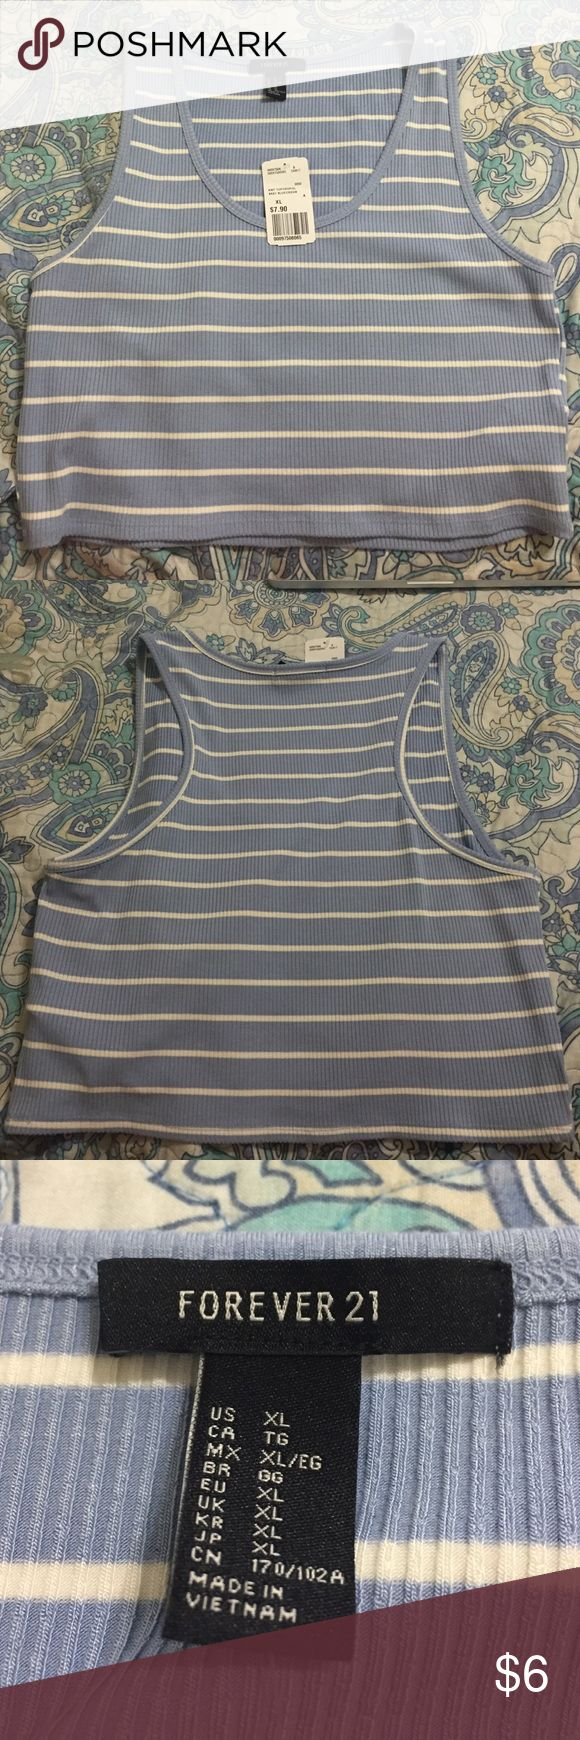 Forever 21 Baby blue and white crop top BRAND NEW NEVER WORN. Tag still on. Forever 21 Tops Crop Tops